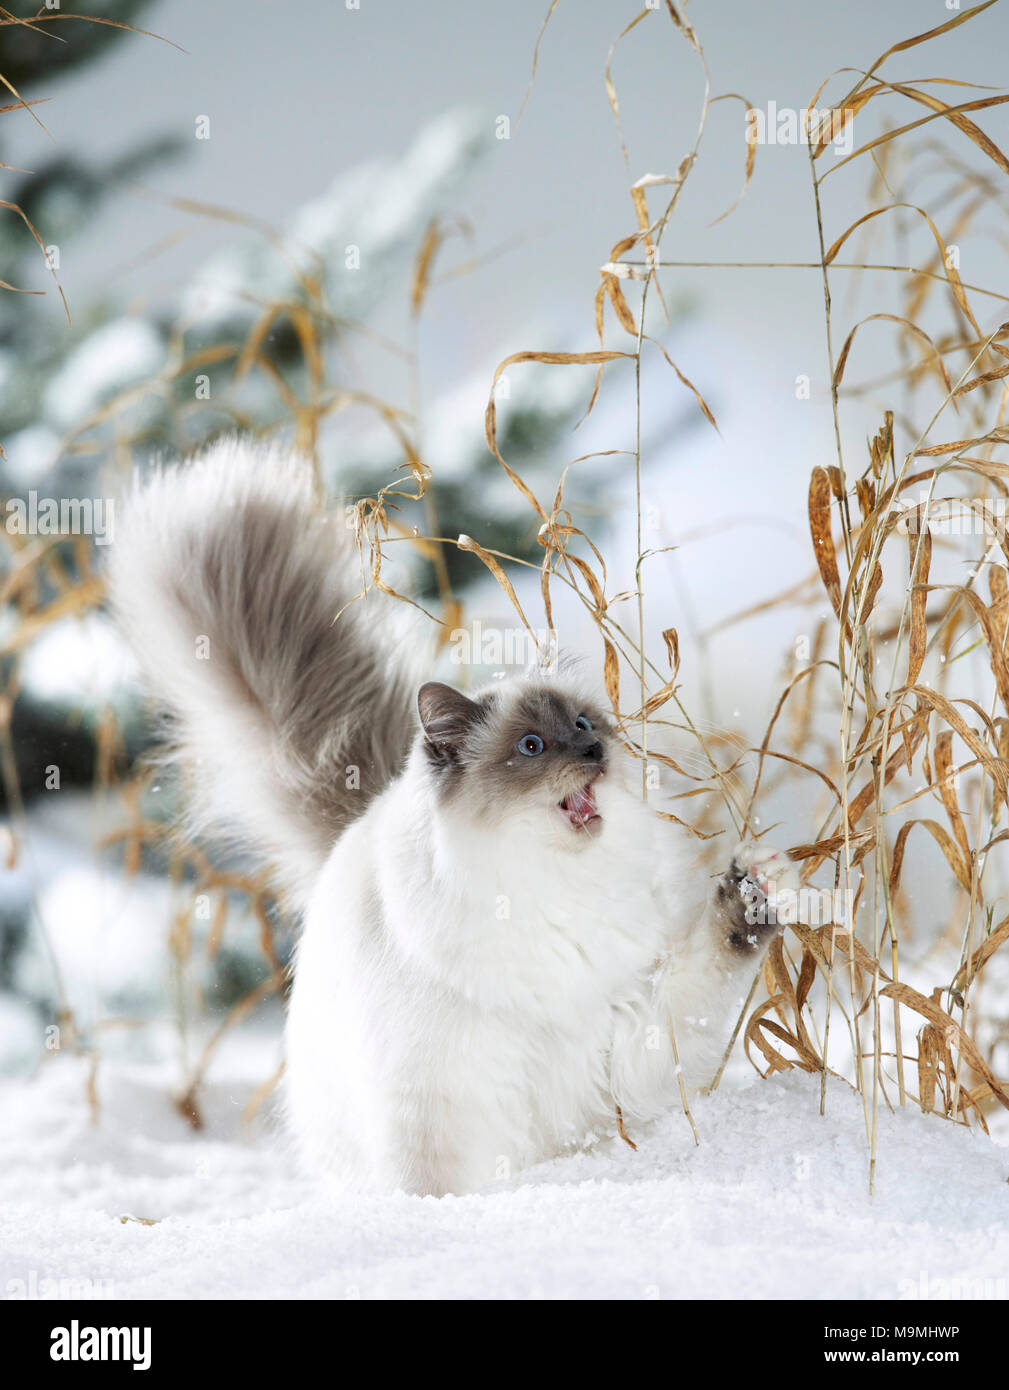 Sacred cat of Burma. Adult cat playing with dry stalks in snow. Germany - Stock Image